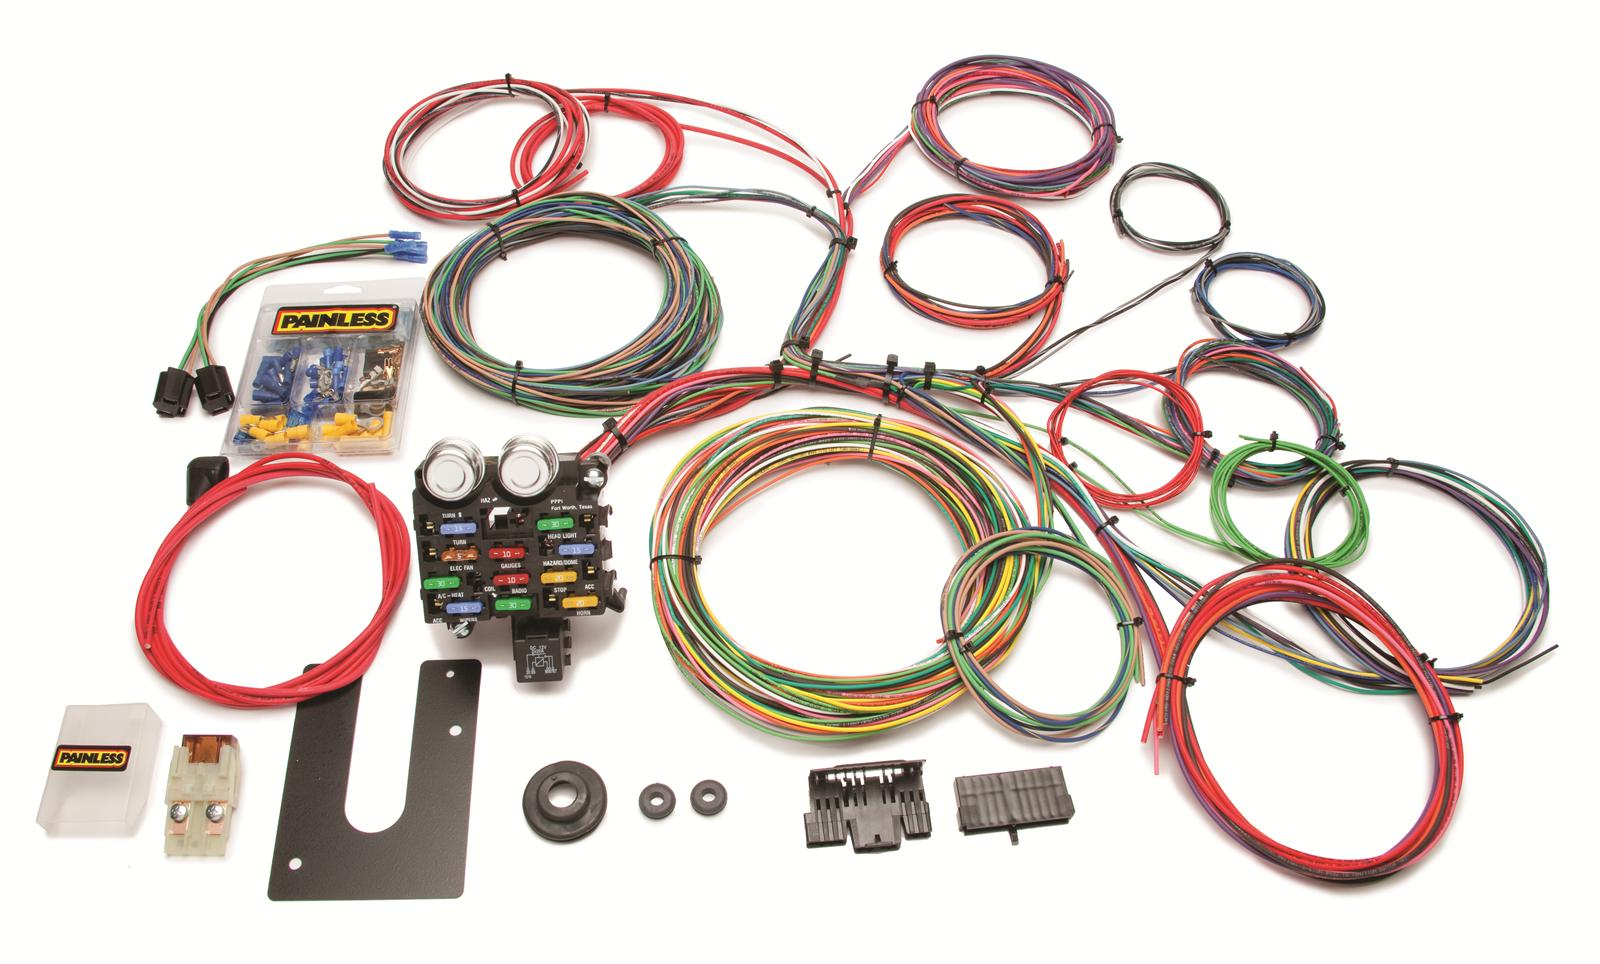 Painless Performance 21 Circuit Universal Harnesses 10102 Free Wiring Harness Mazda Kia Jeep Shipping On Orders Over 49 At Summit Racing